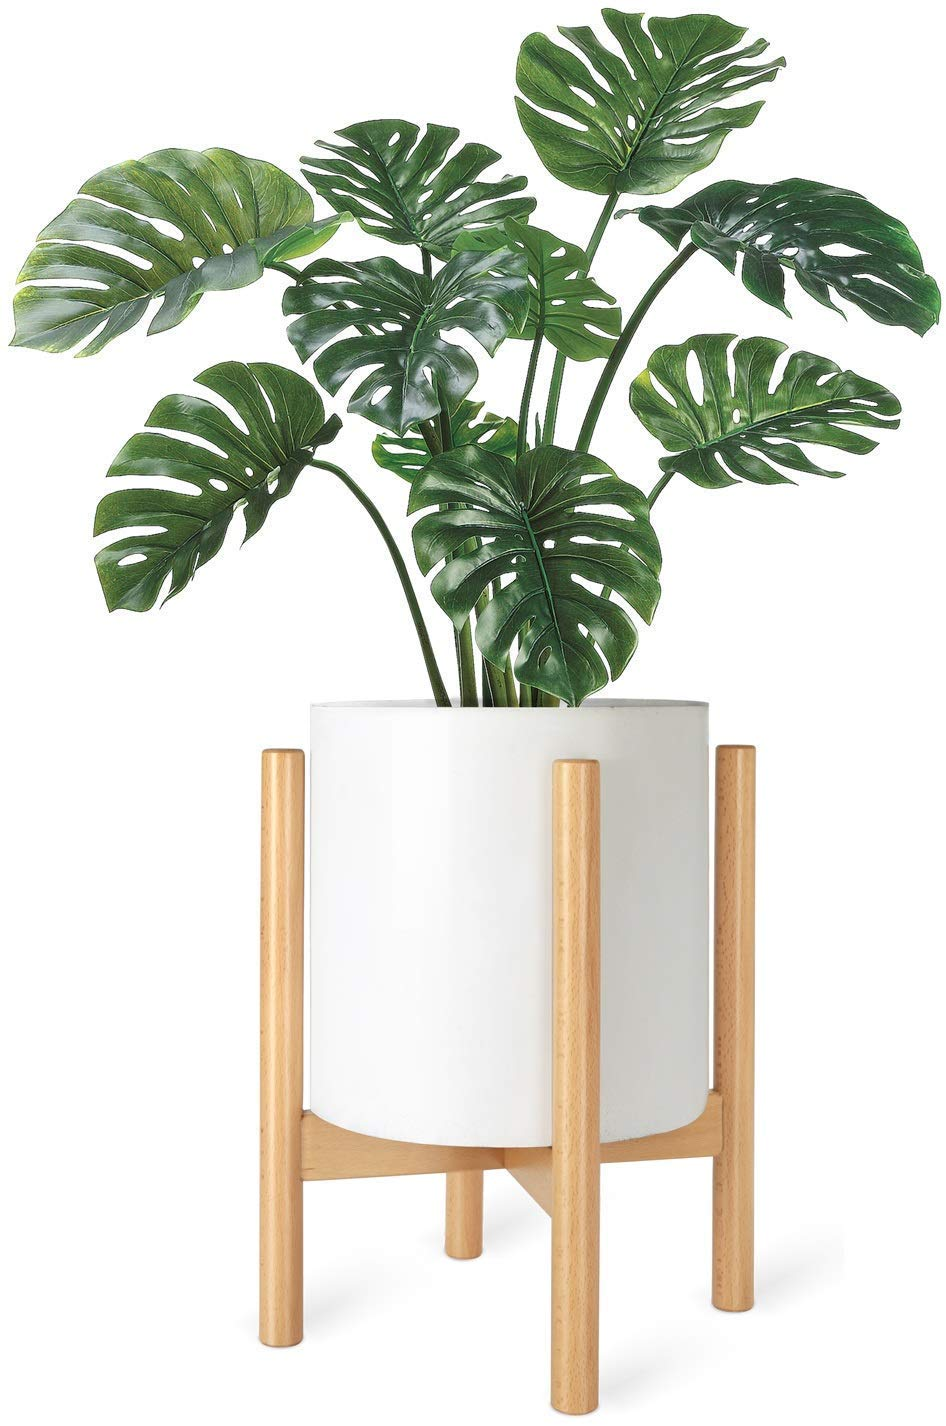 Mkono Plant Stand Mid Century Wood Flower Pot Holder (Pot Not Included) Display Potted Rack Rustic, Up to 10 Inch Planter, Natural